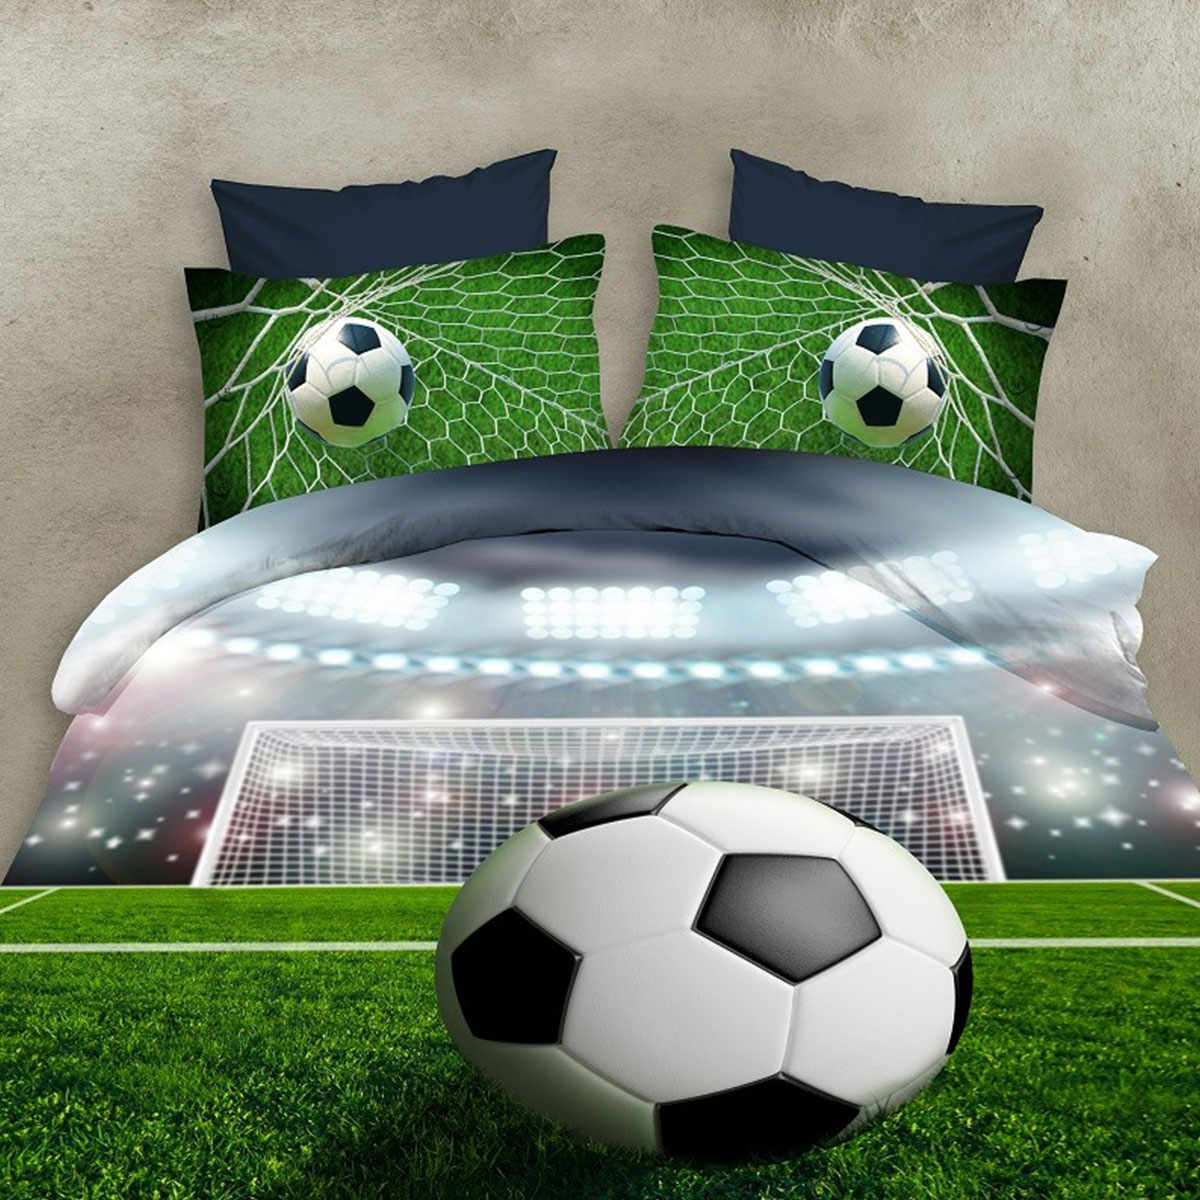 3Pcs Bedclothes 3D Bedding Sets Soccer Printed Quilt Pillows Cover Bed Fashion Bedspread For Football Game